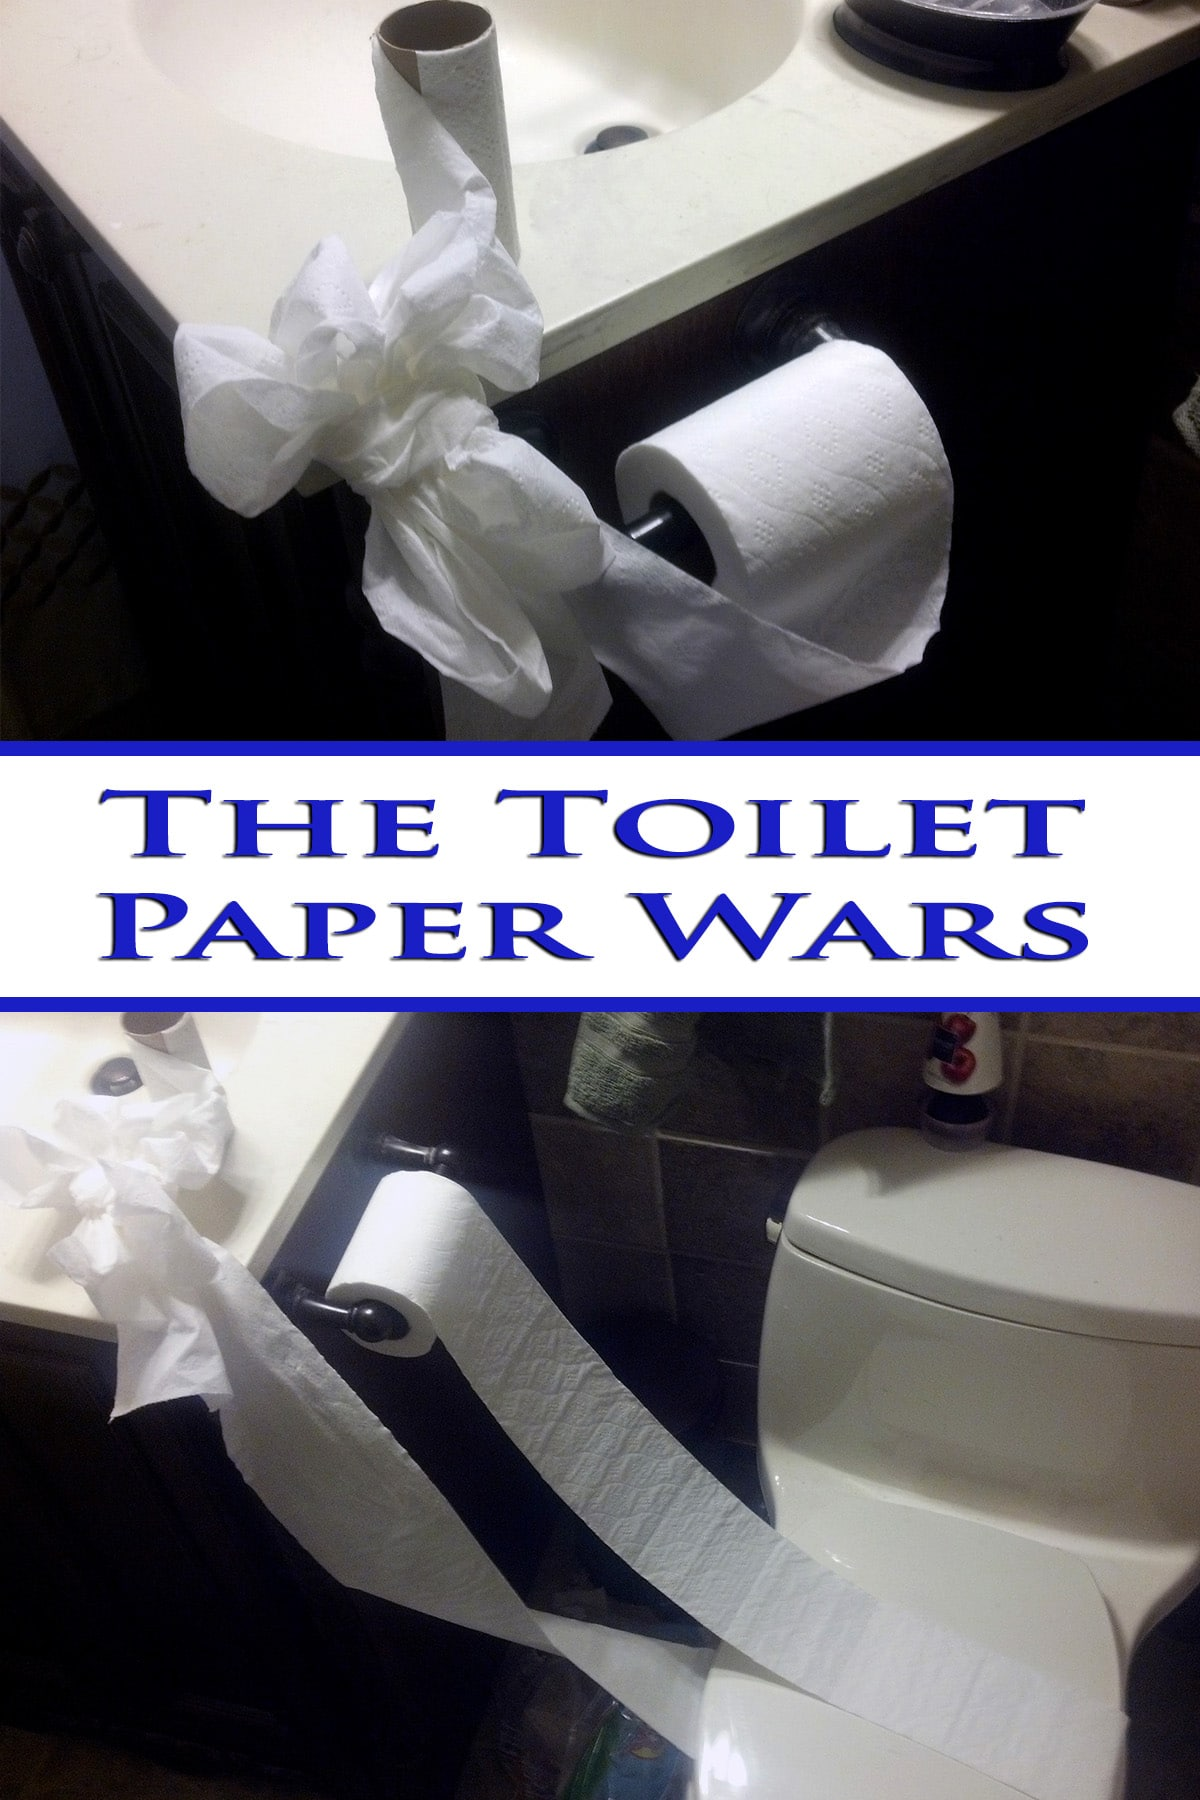 A compilation image of toilet paper draped inappropriately in the washroom. Blue writing says The Toilet Paper Wars.